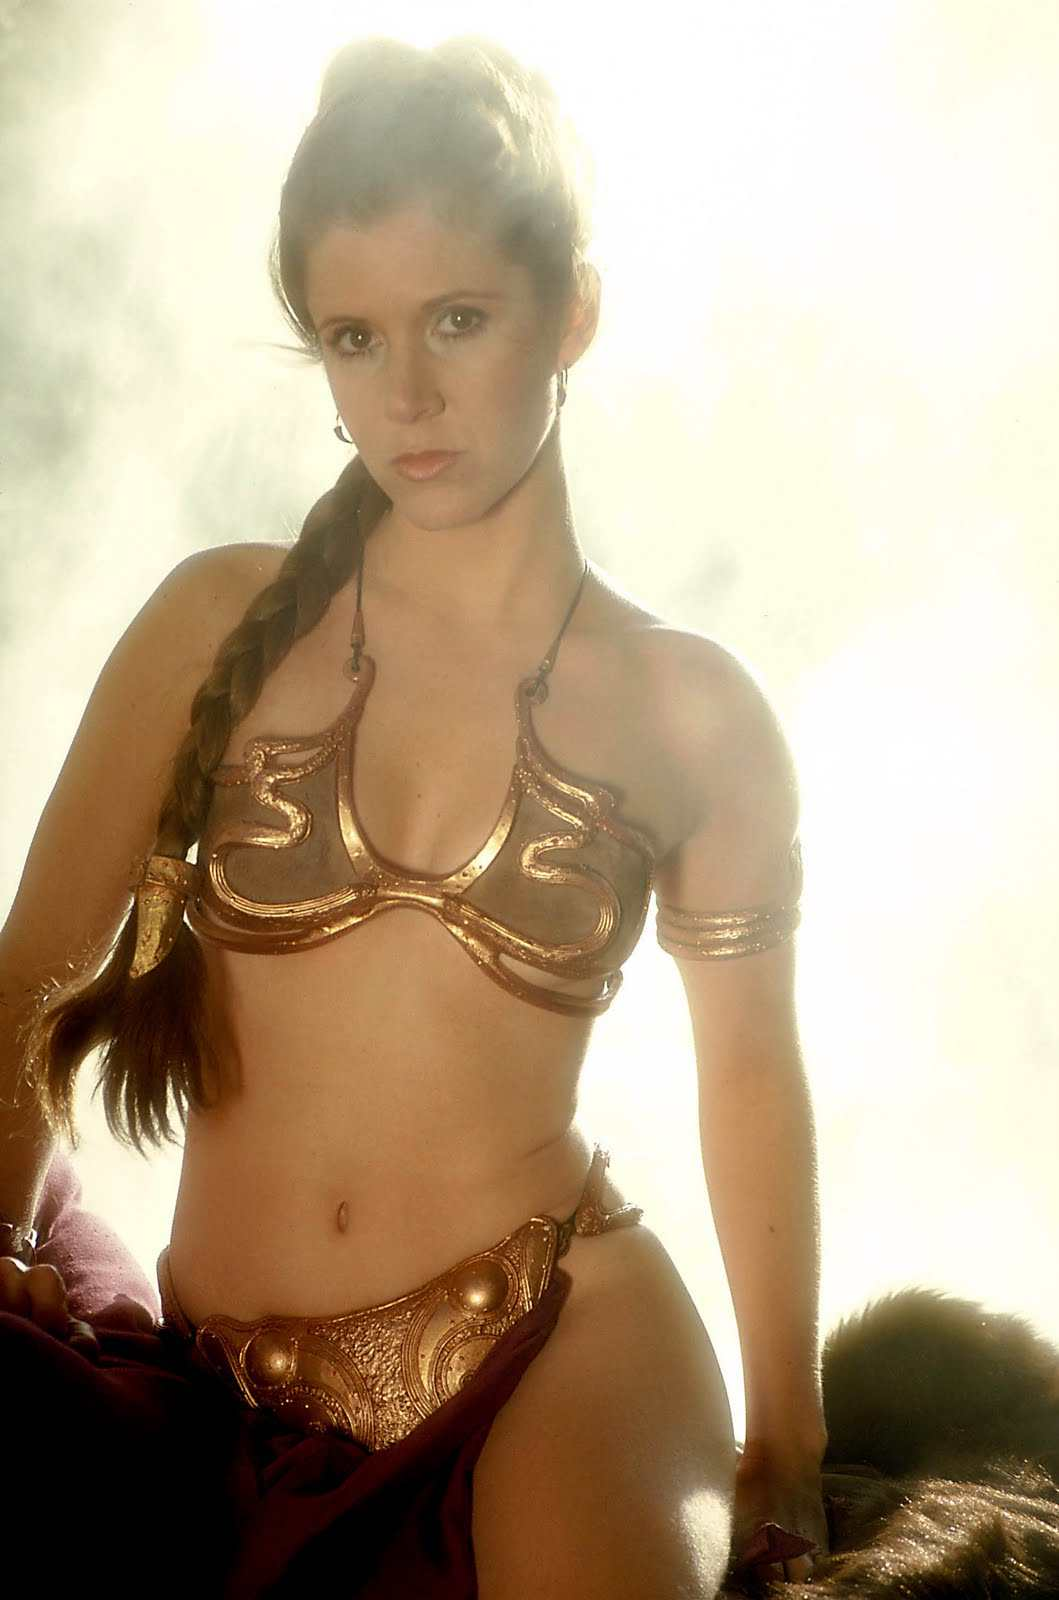 Schlong sexual leia bikini for sale great you can